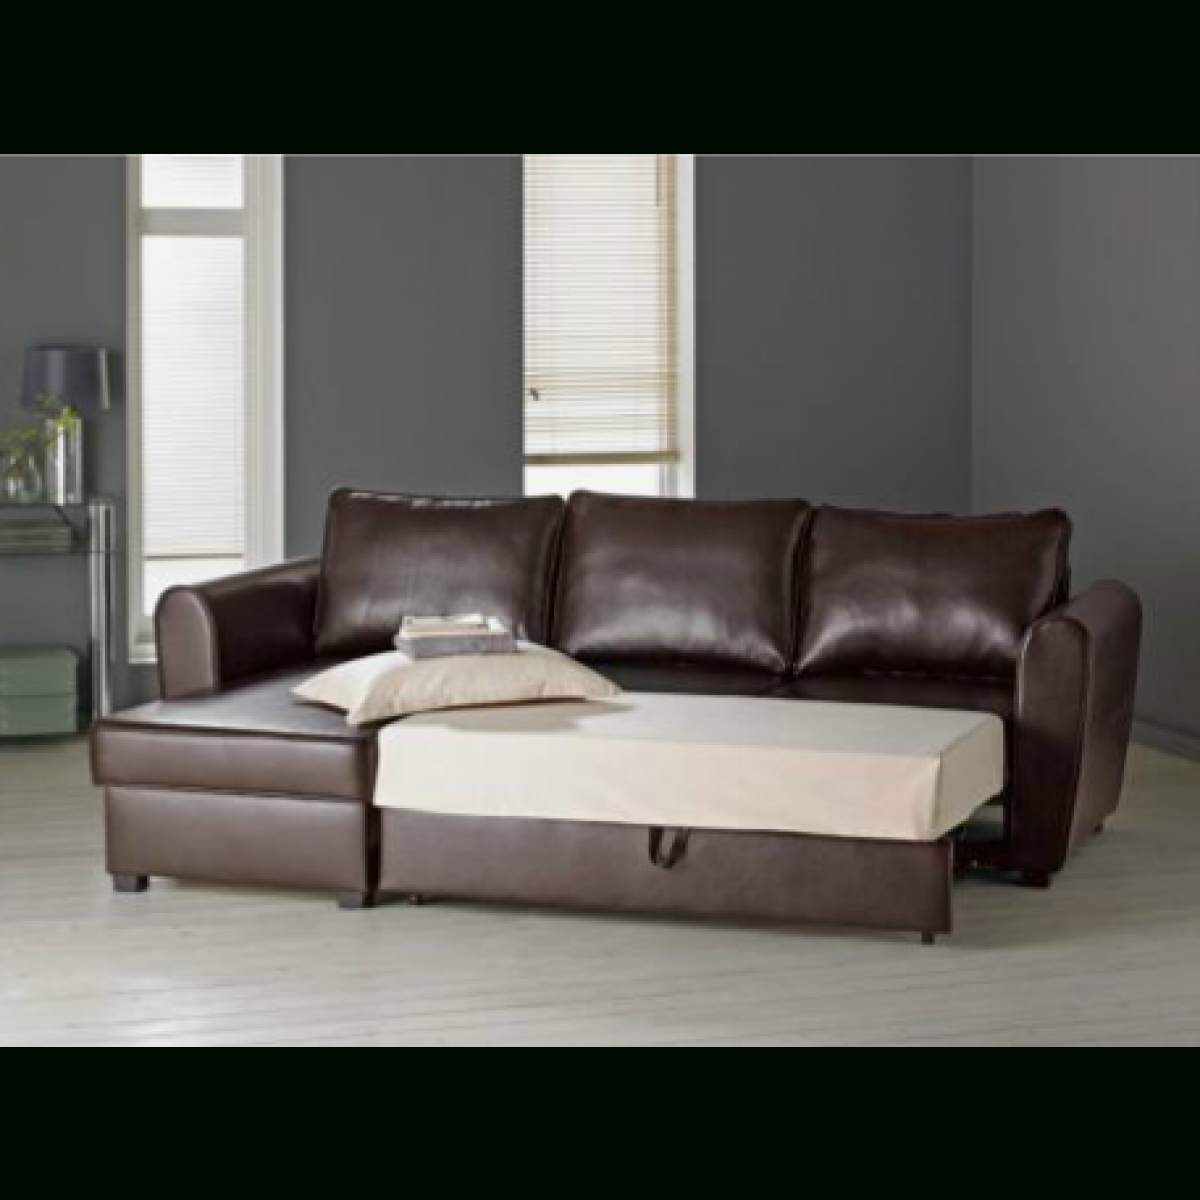 Leather Sofas With Storage Inside Most Popular Siena Leather Effect Corner Sofa Bed With Storage  Chocolate (View 11 of 20)